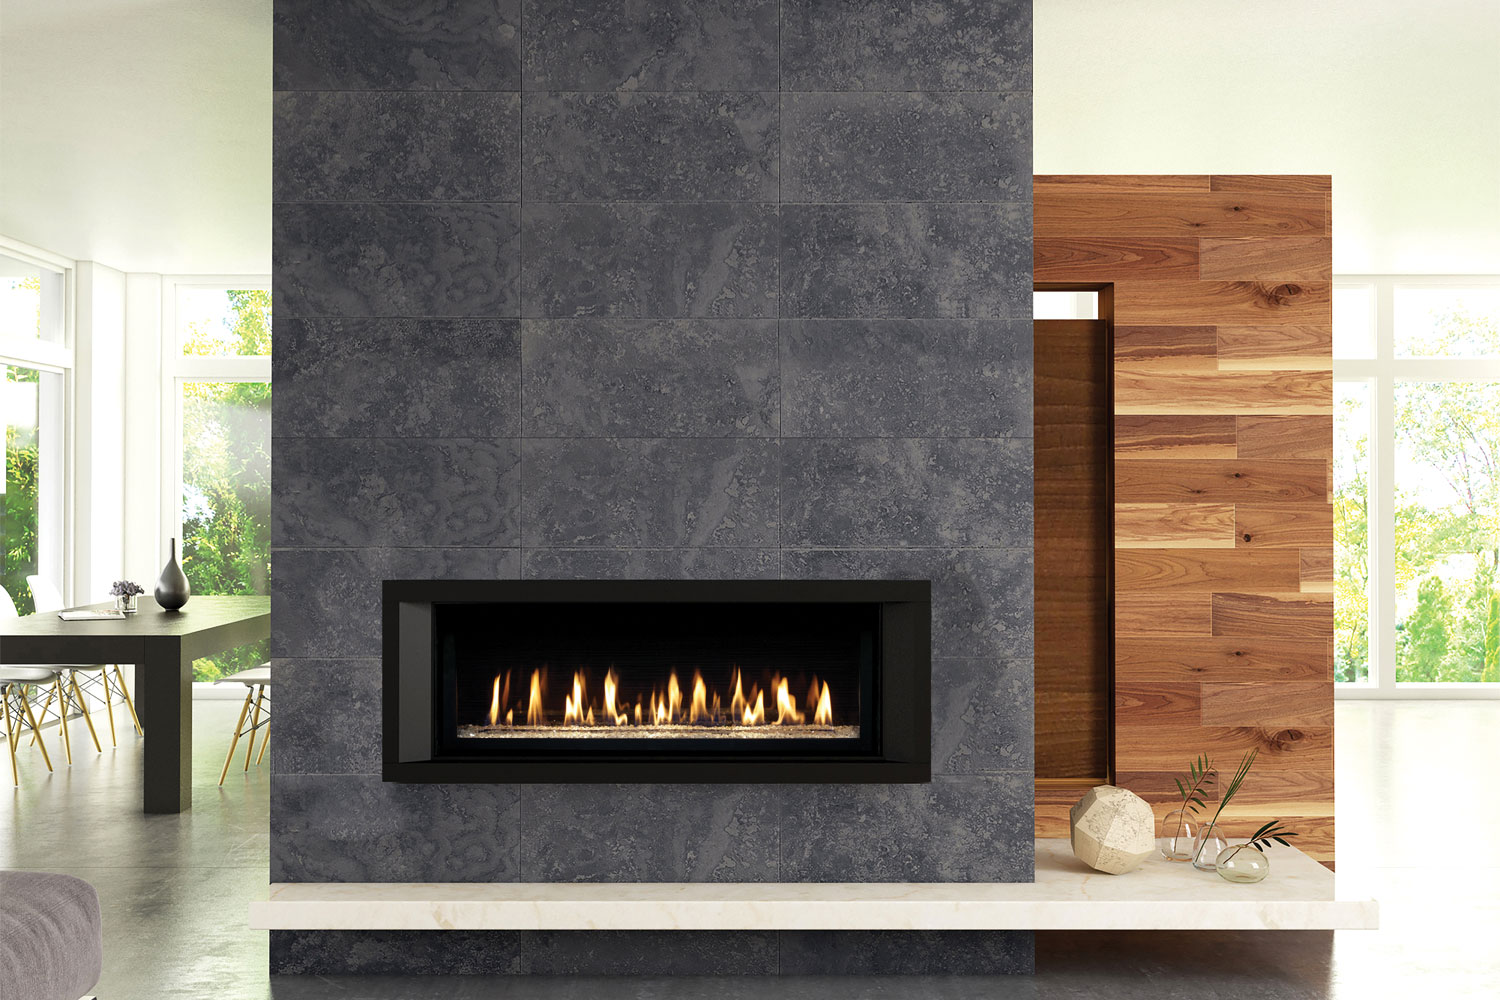 The linear look: custom fireplaces